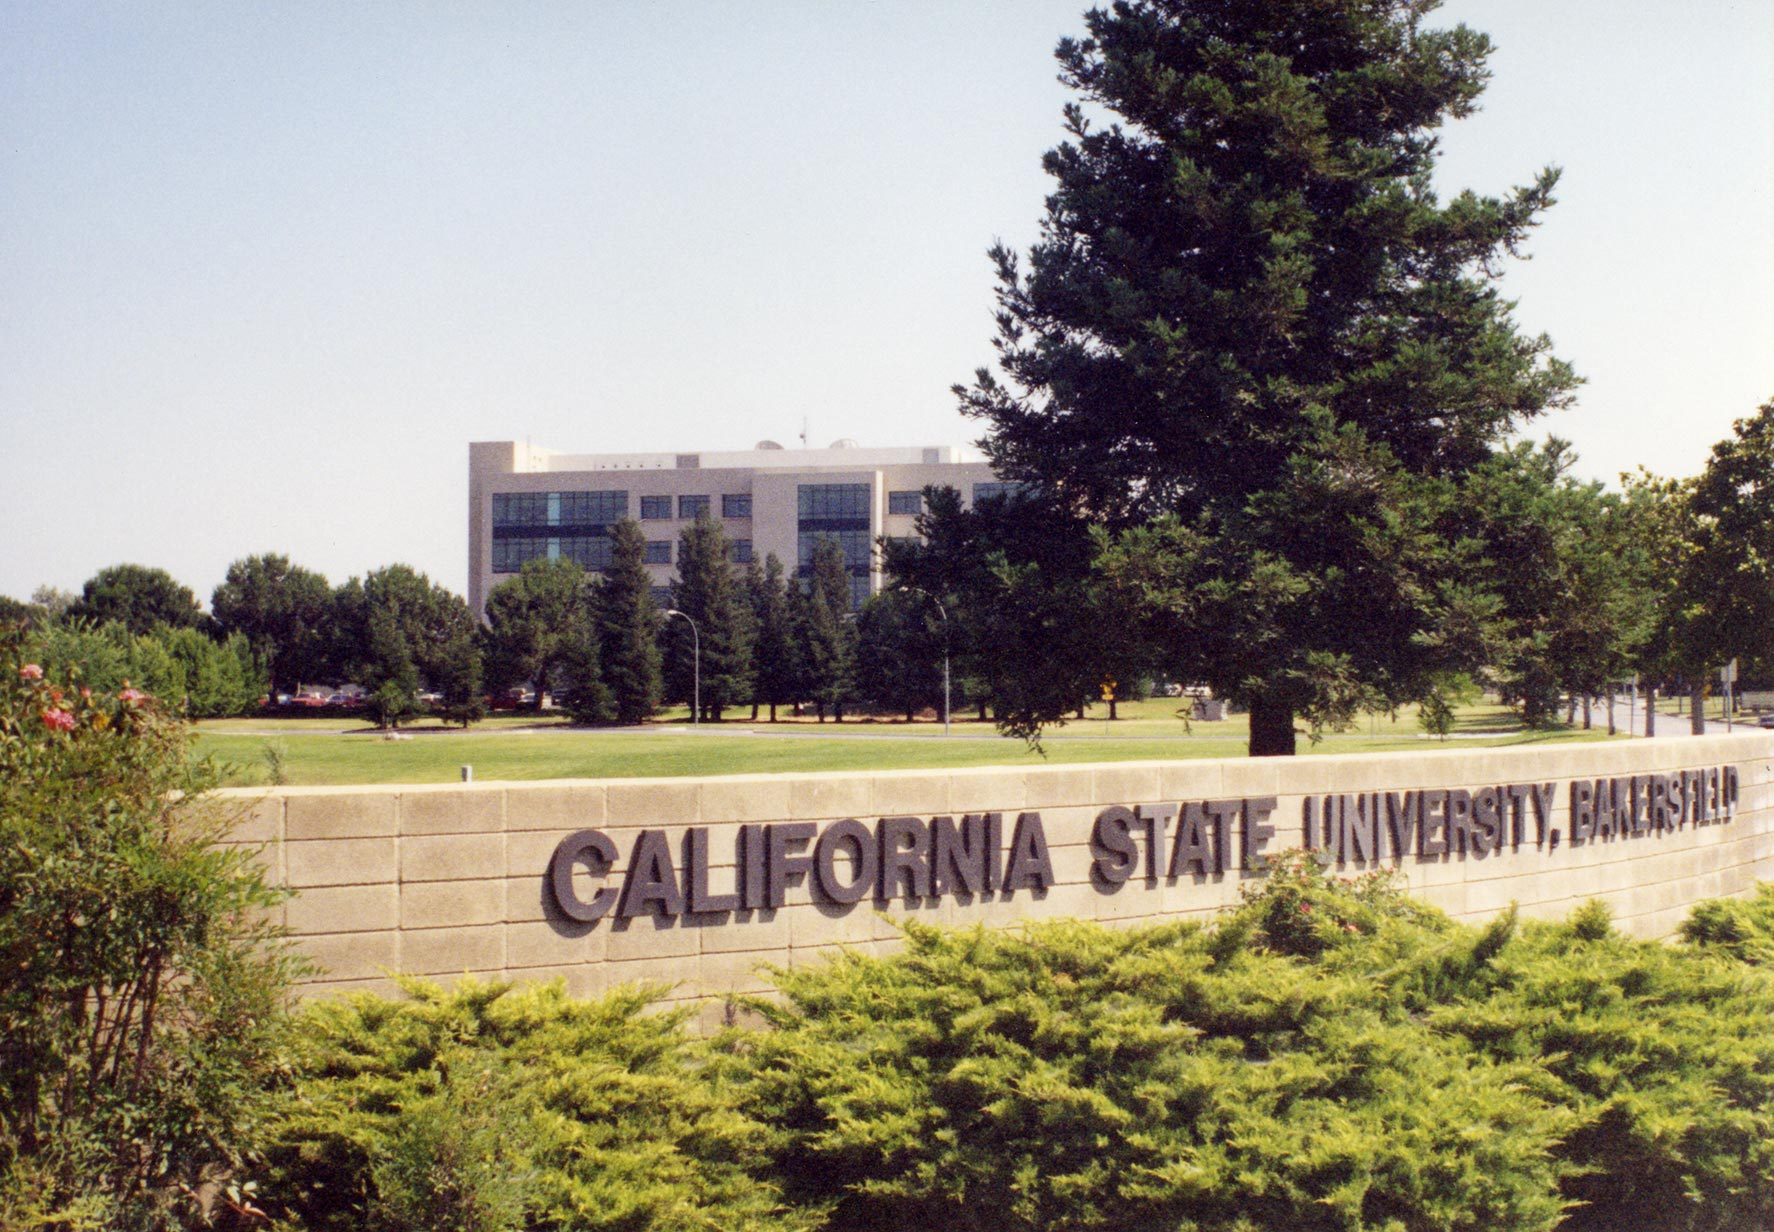 California State University sign